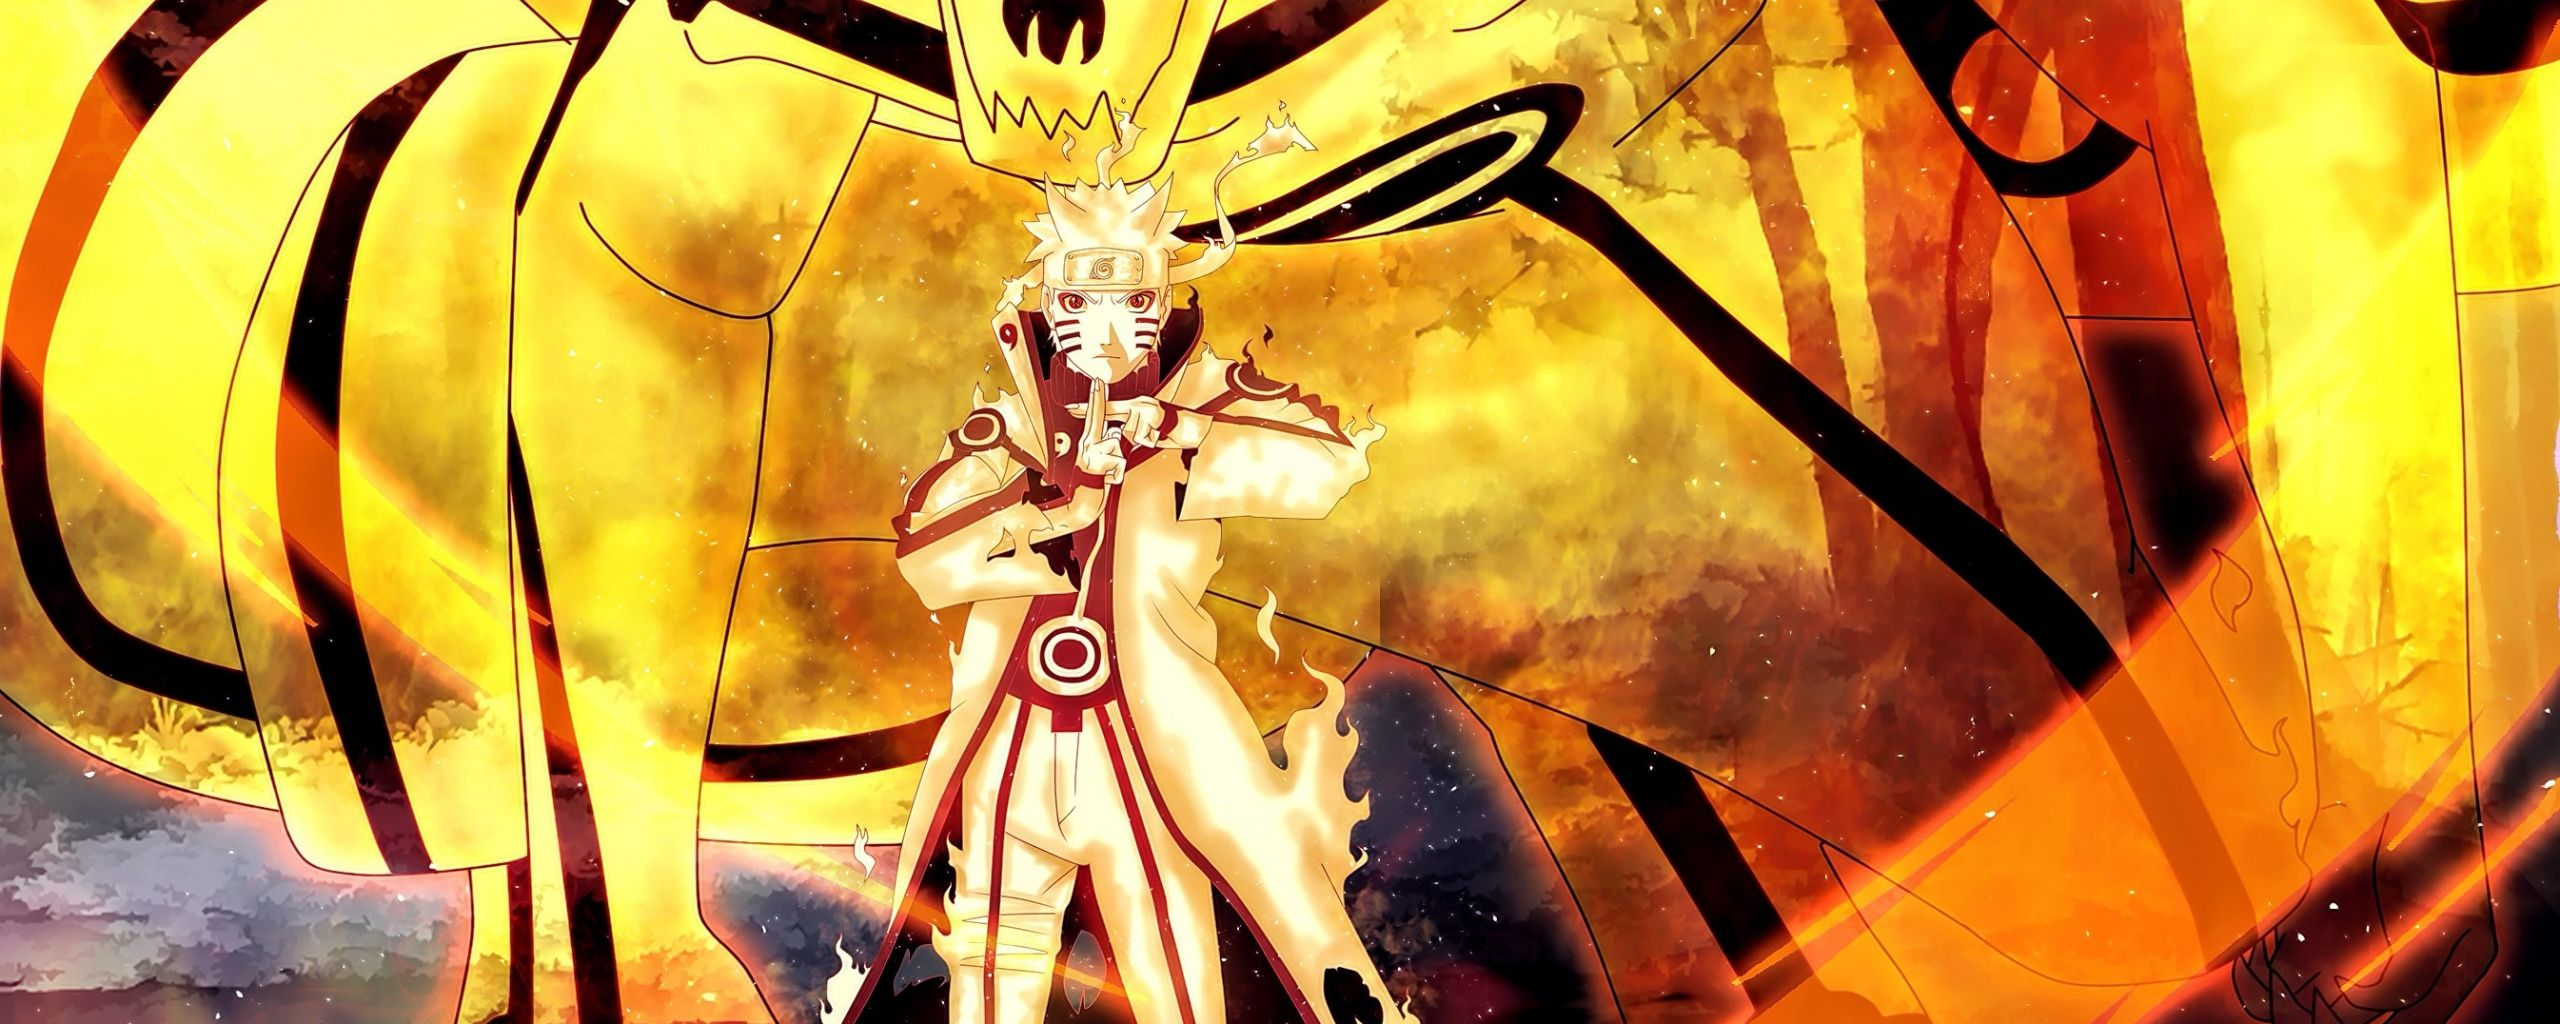 Naruto Dual Monitor Wallpapers - Top Free Naruto Dual ...